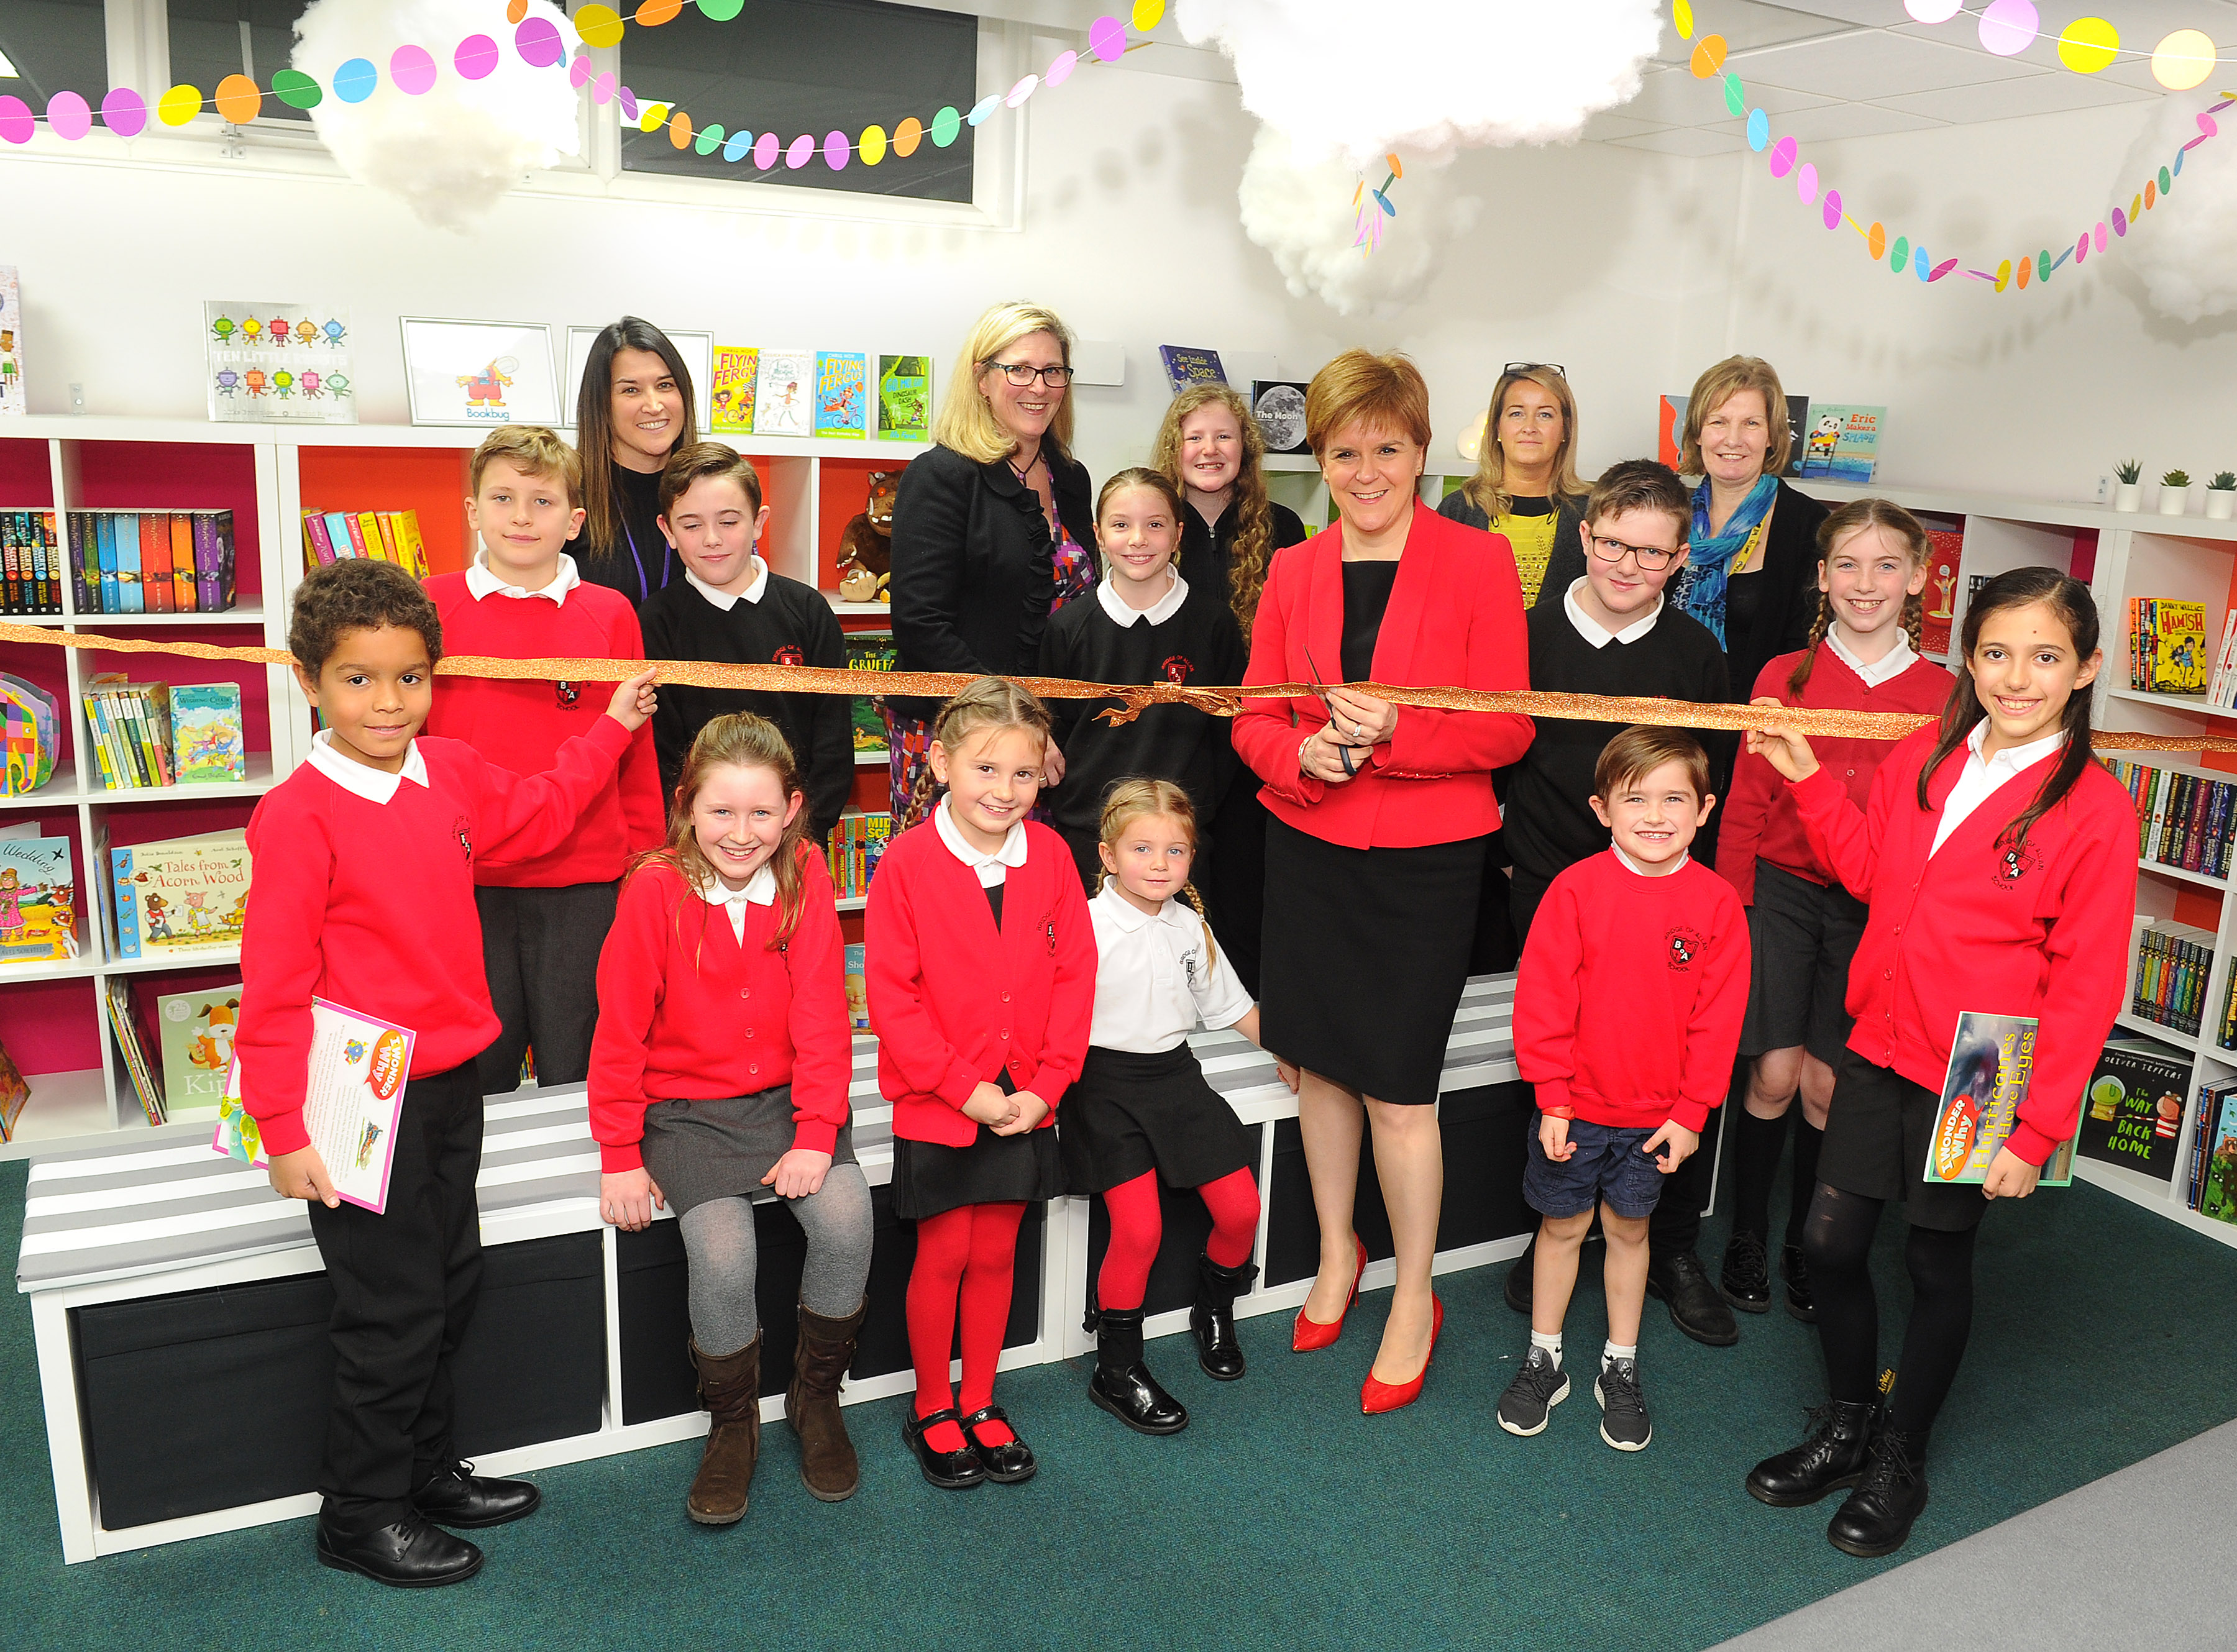 Nicola Sturgeon vists Bridge of Allan Primary